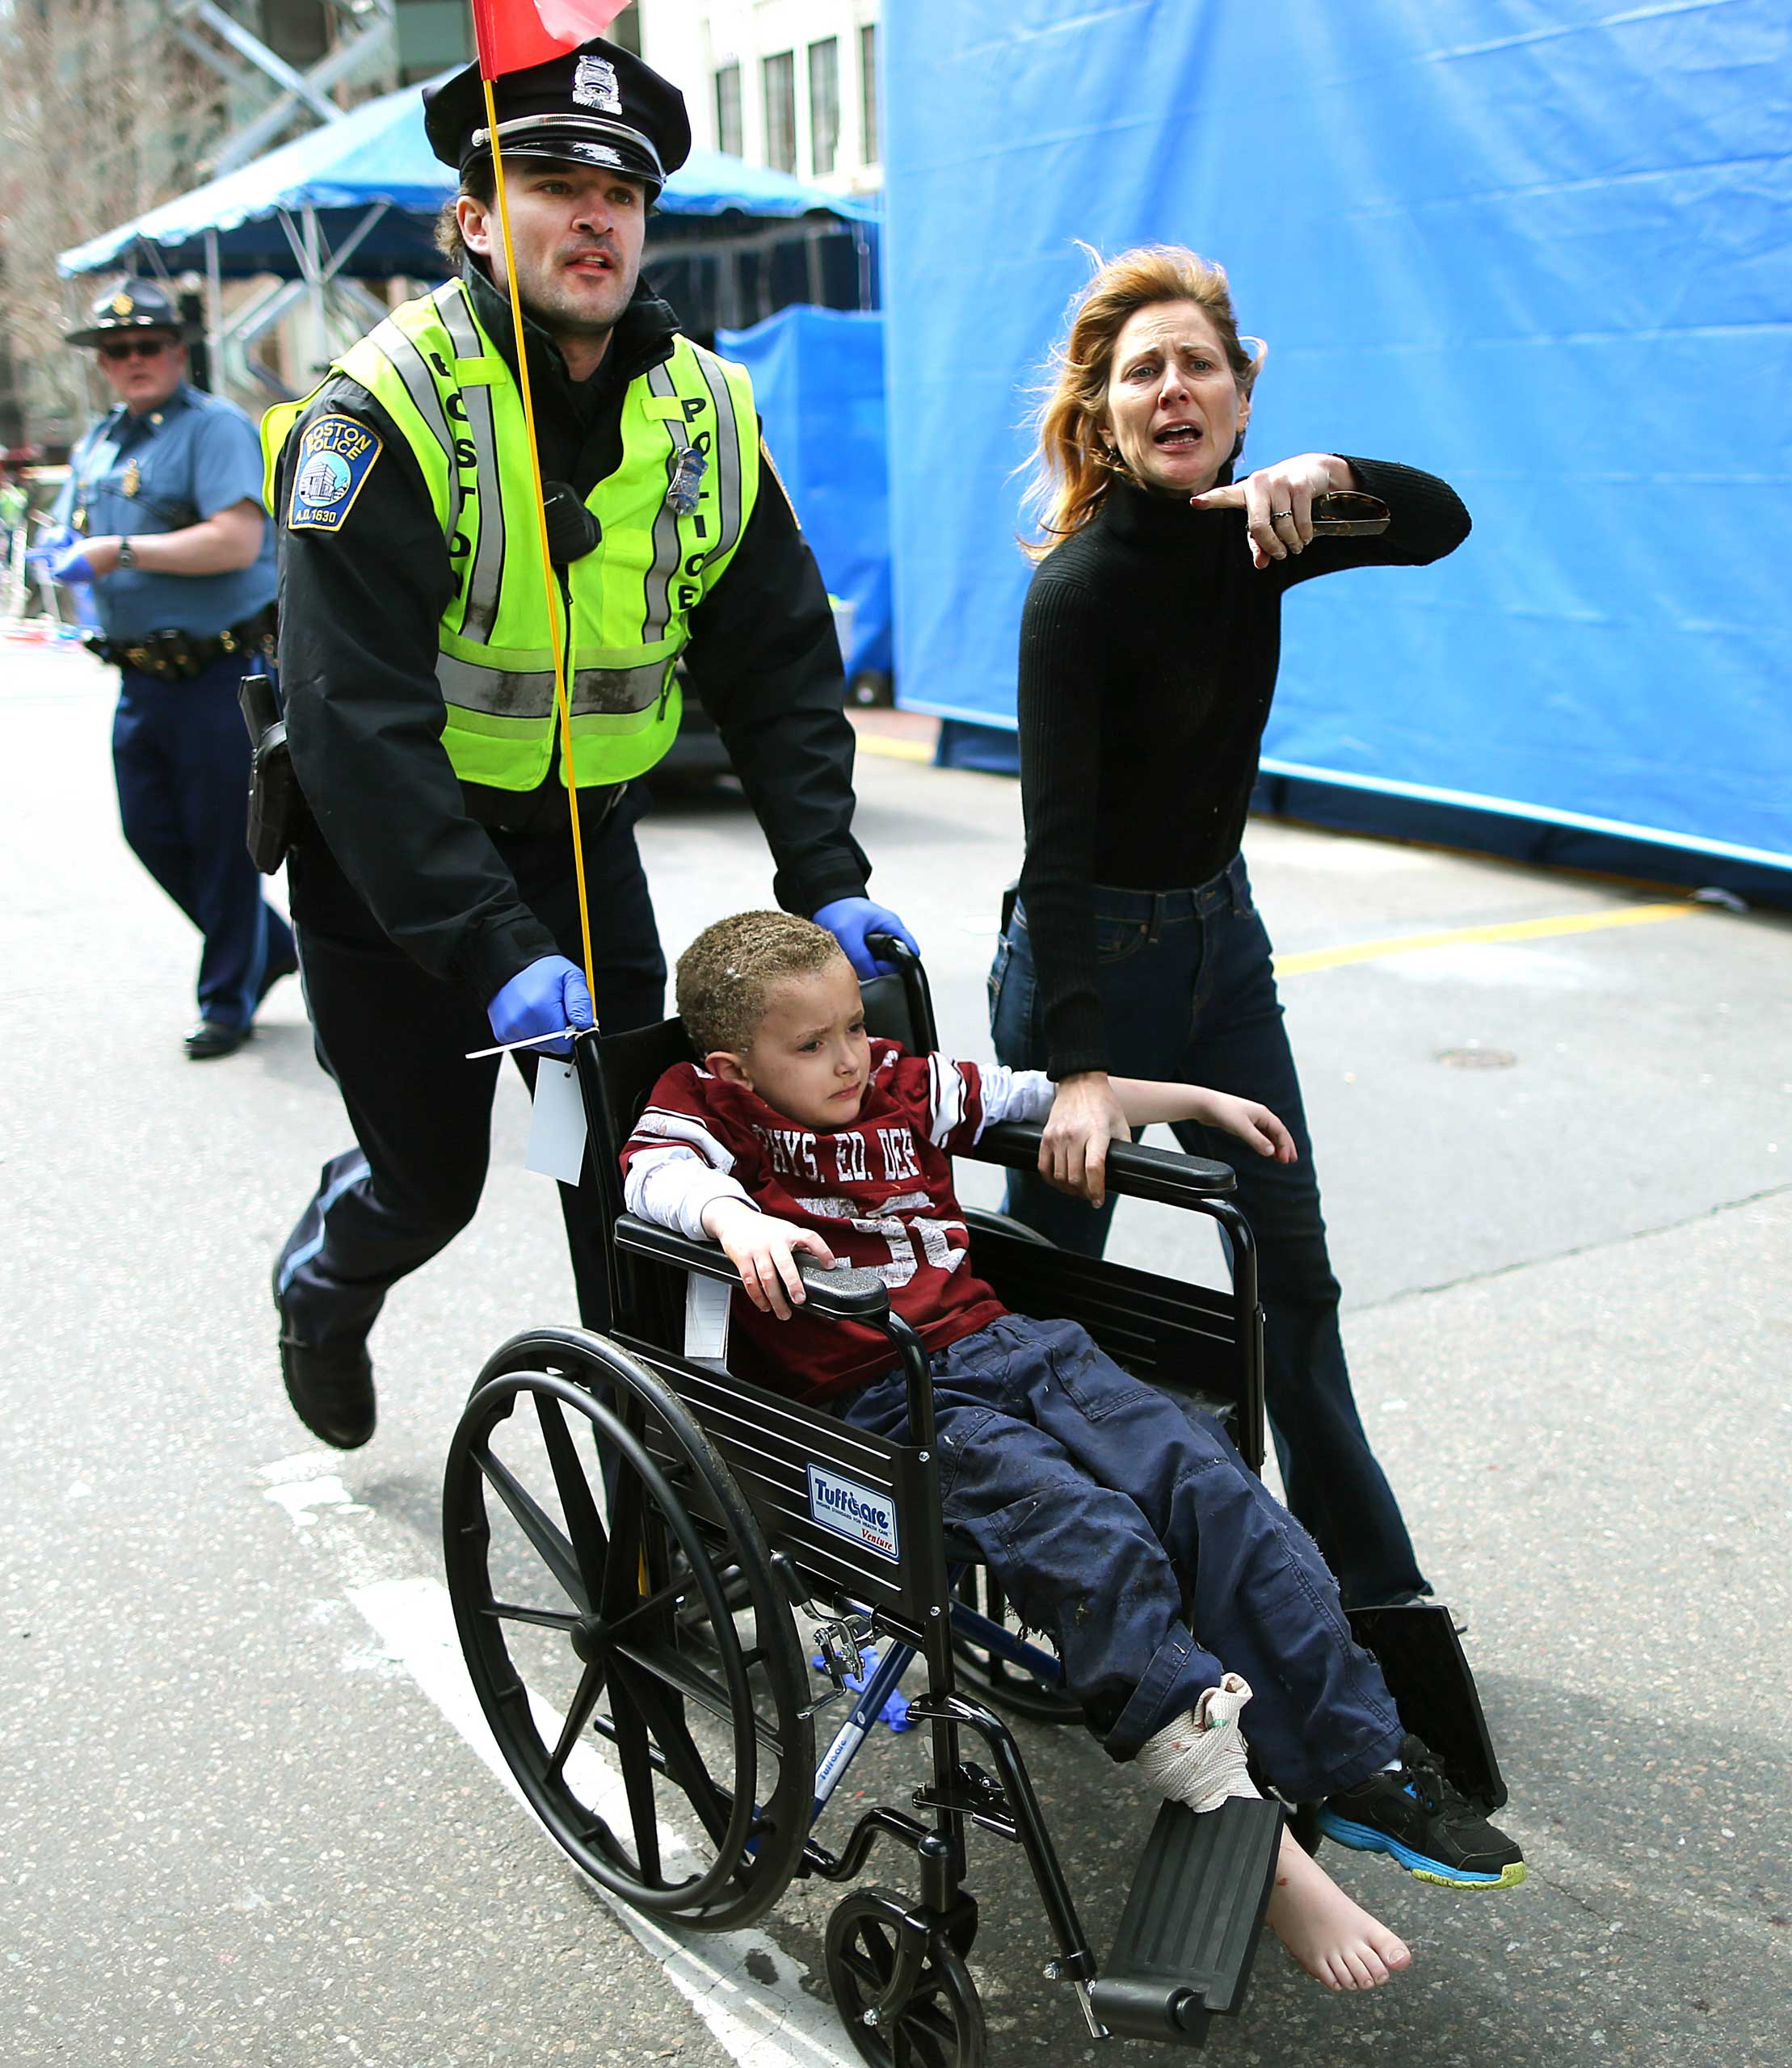 April 15, 2013. A wounded boy is evacuated from the scene by a Boston police officer.